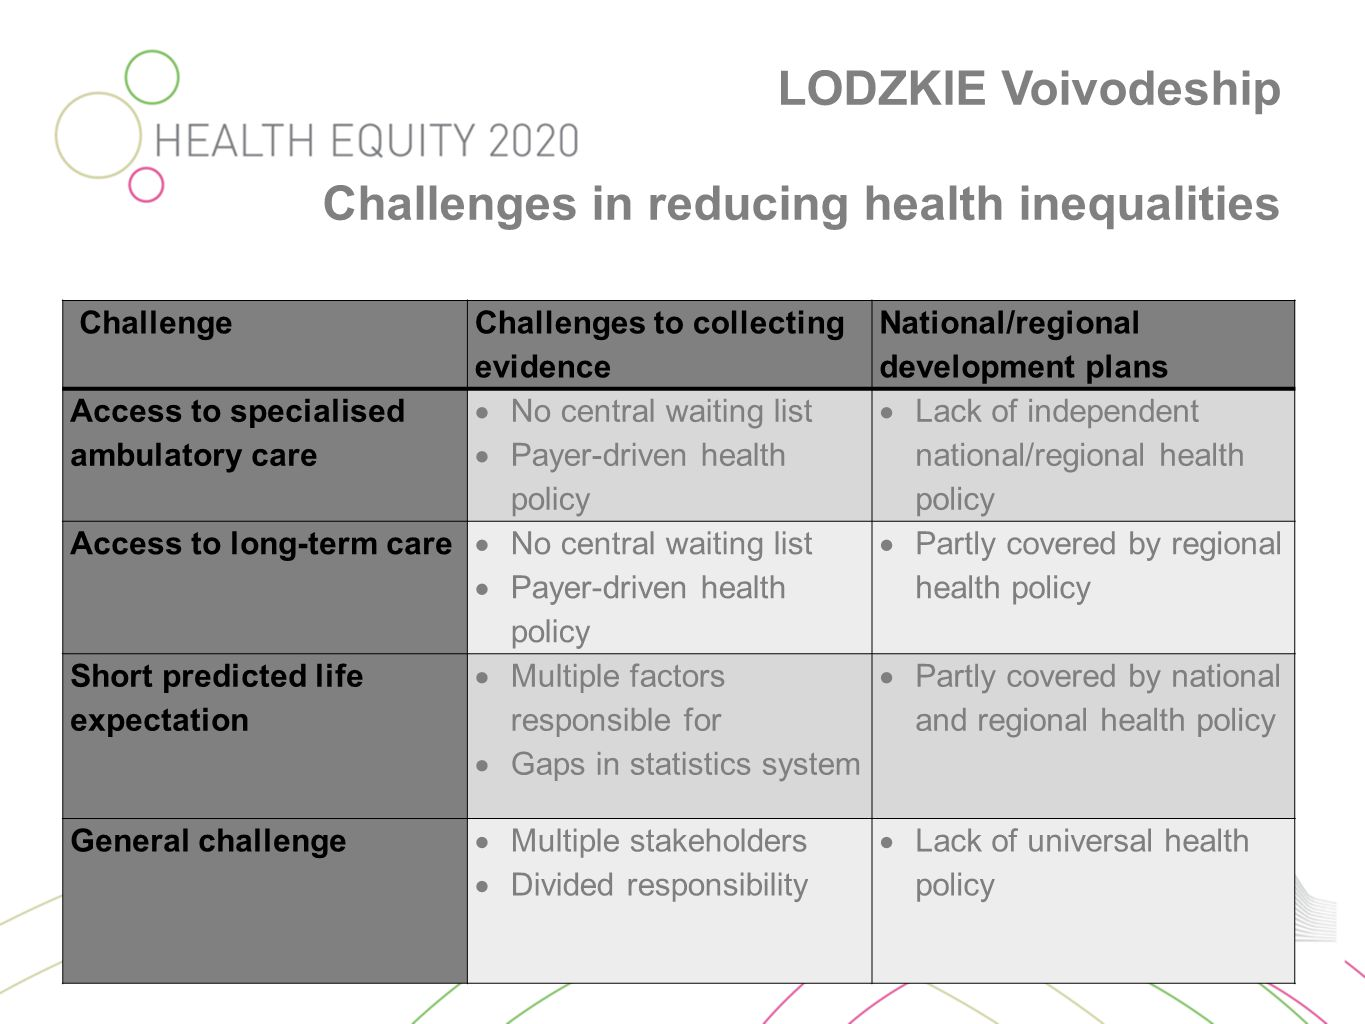 LODZKIE Voivodeship Challenges in reducing health inequalities Challenge Challenges to collecting evidence National/regional development plans Access to specialised ambulatory care  No central waiting list  Payer-driven health policy  Lack of independent national/regional health policy Access to long-term care  No central waiting list  Payer-driven health policy  Partly covered by regional health policy Short predicted life expectation  Multiple factors responsible for  Gaps in statistics system  Partly covered by national and regional health policy General challenge  Multiple stakeholders  Divided responsibility  Lack of universal health policy